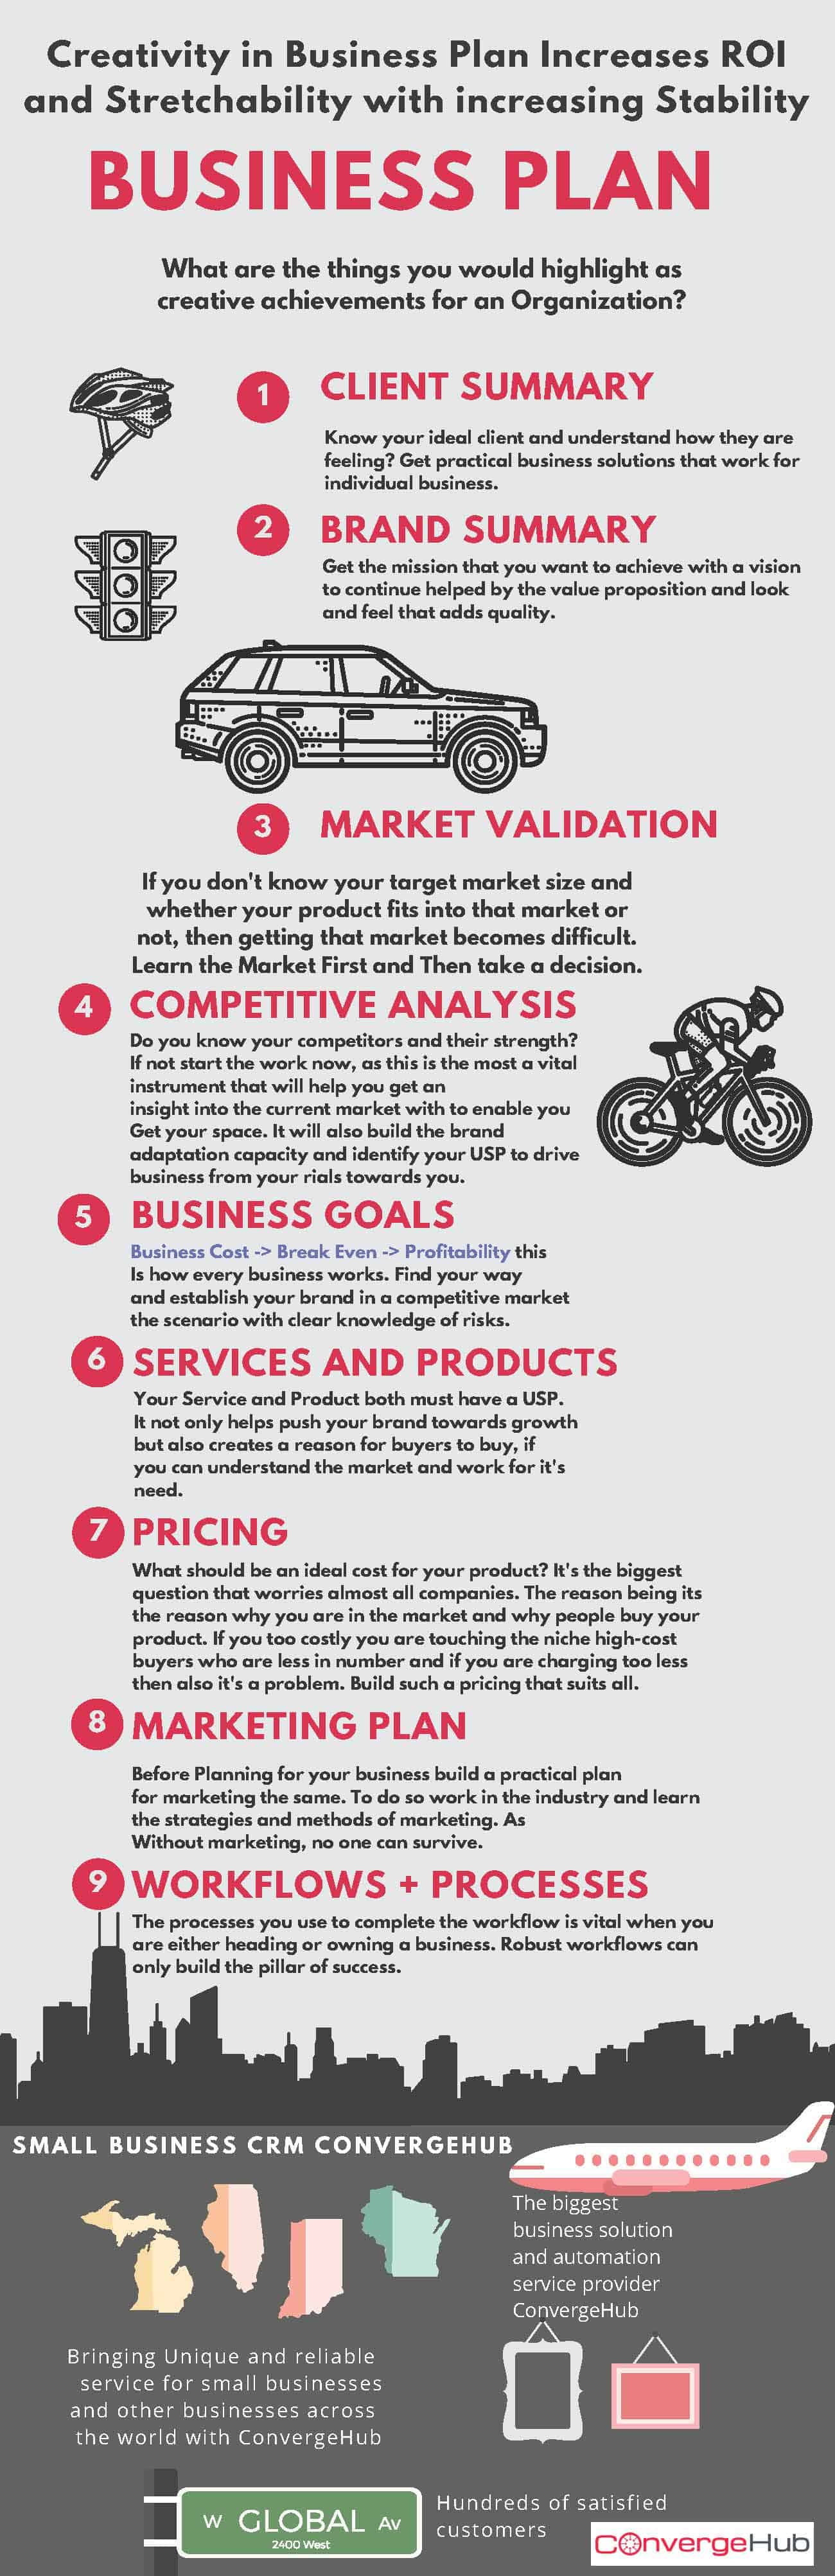 Creativity in Business Plan Increases ROI